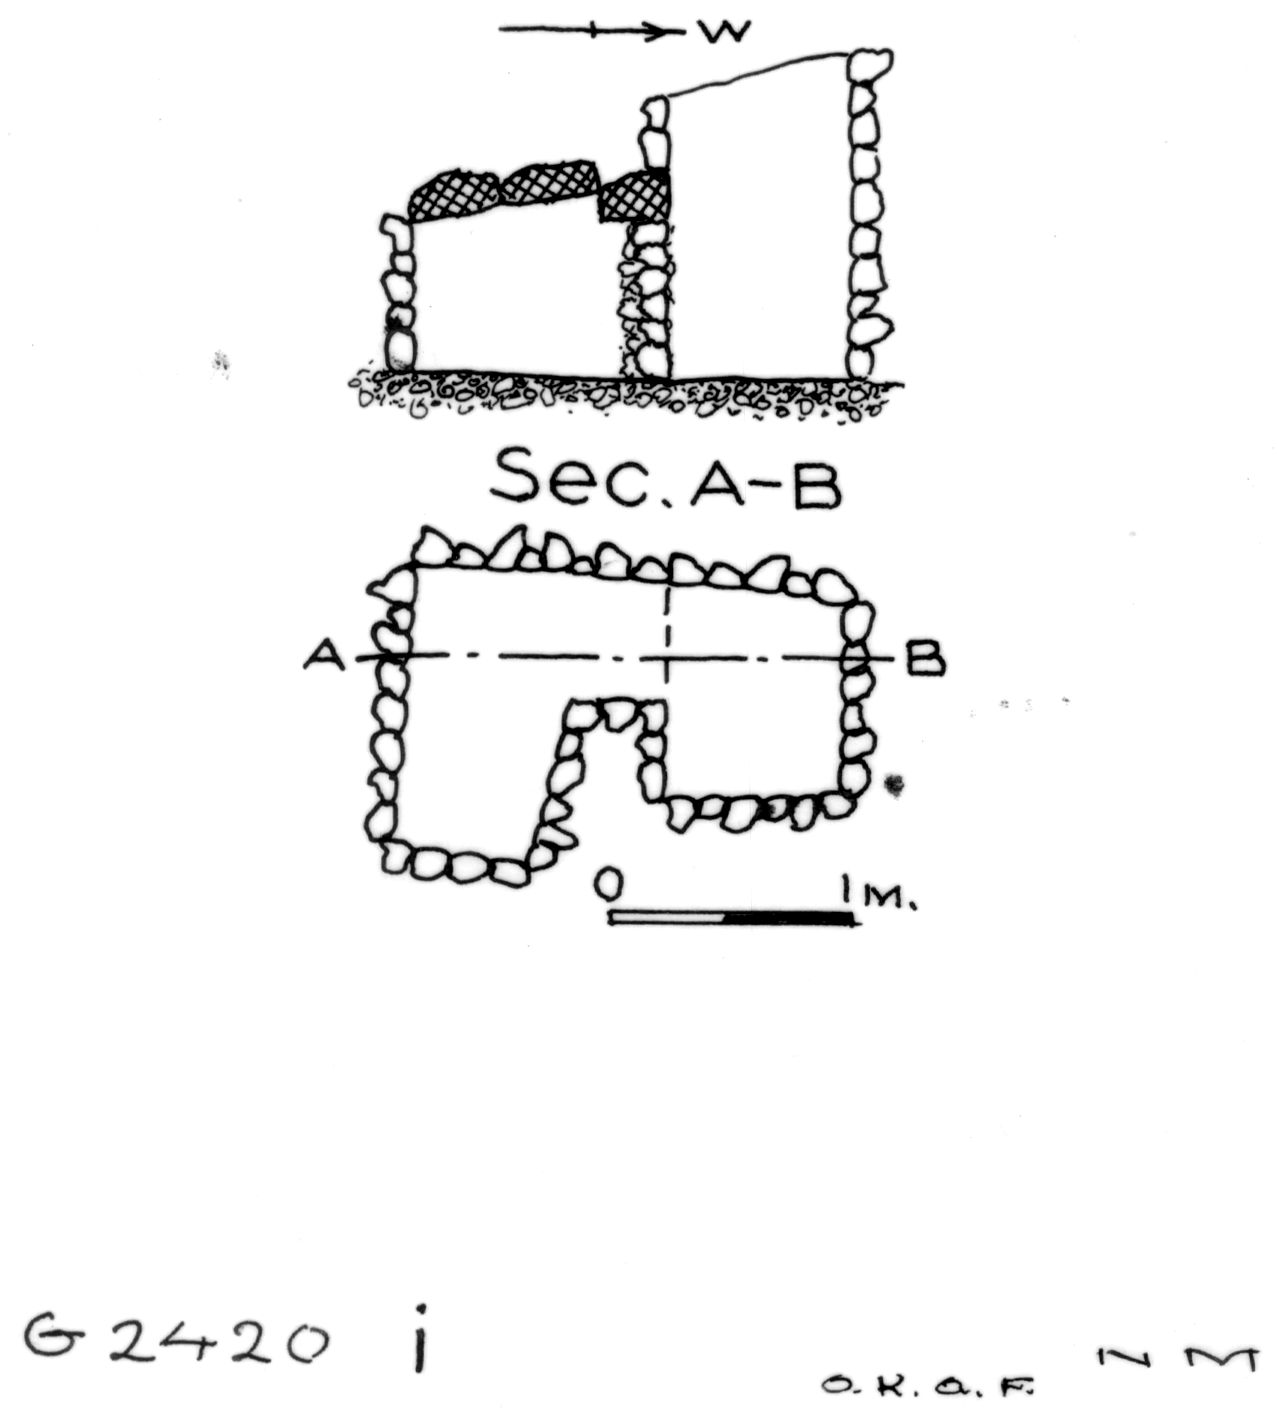 Maps and plans: G 2420, Shaft I